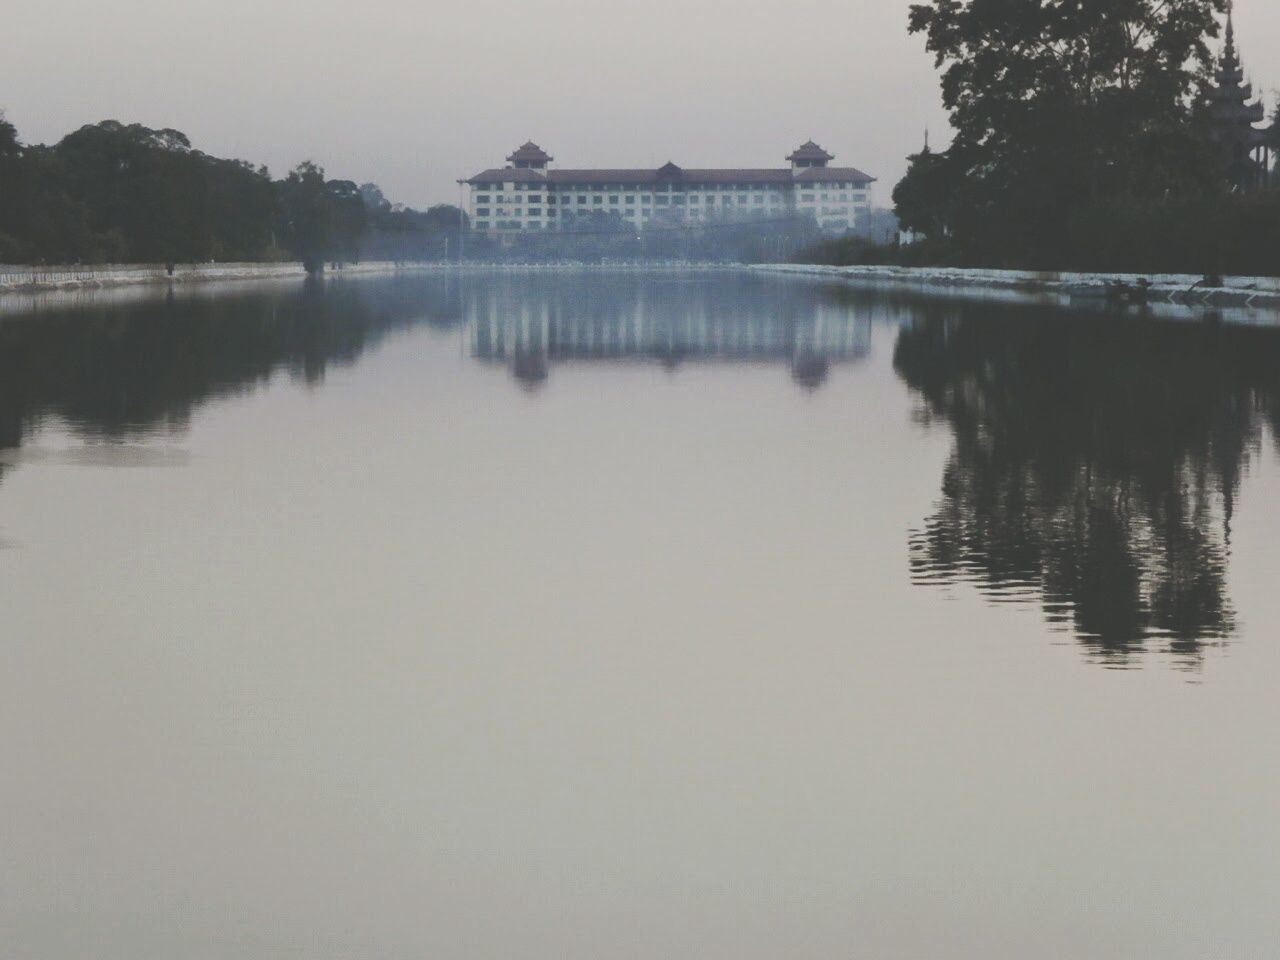 Calm Lake By Building Against Sky